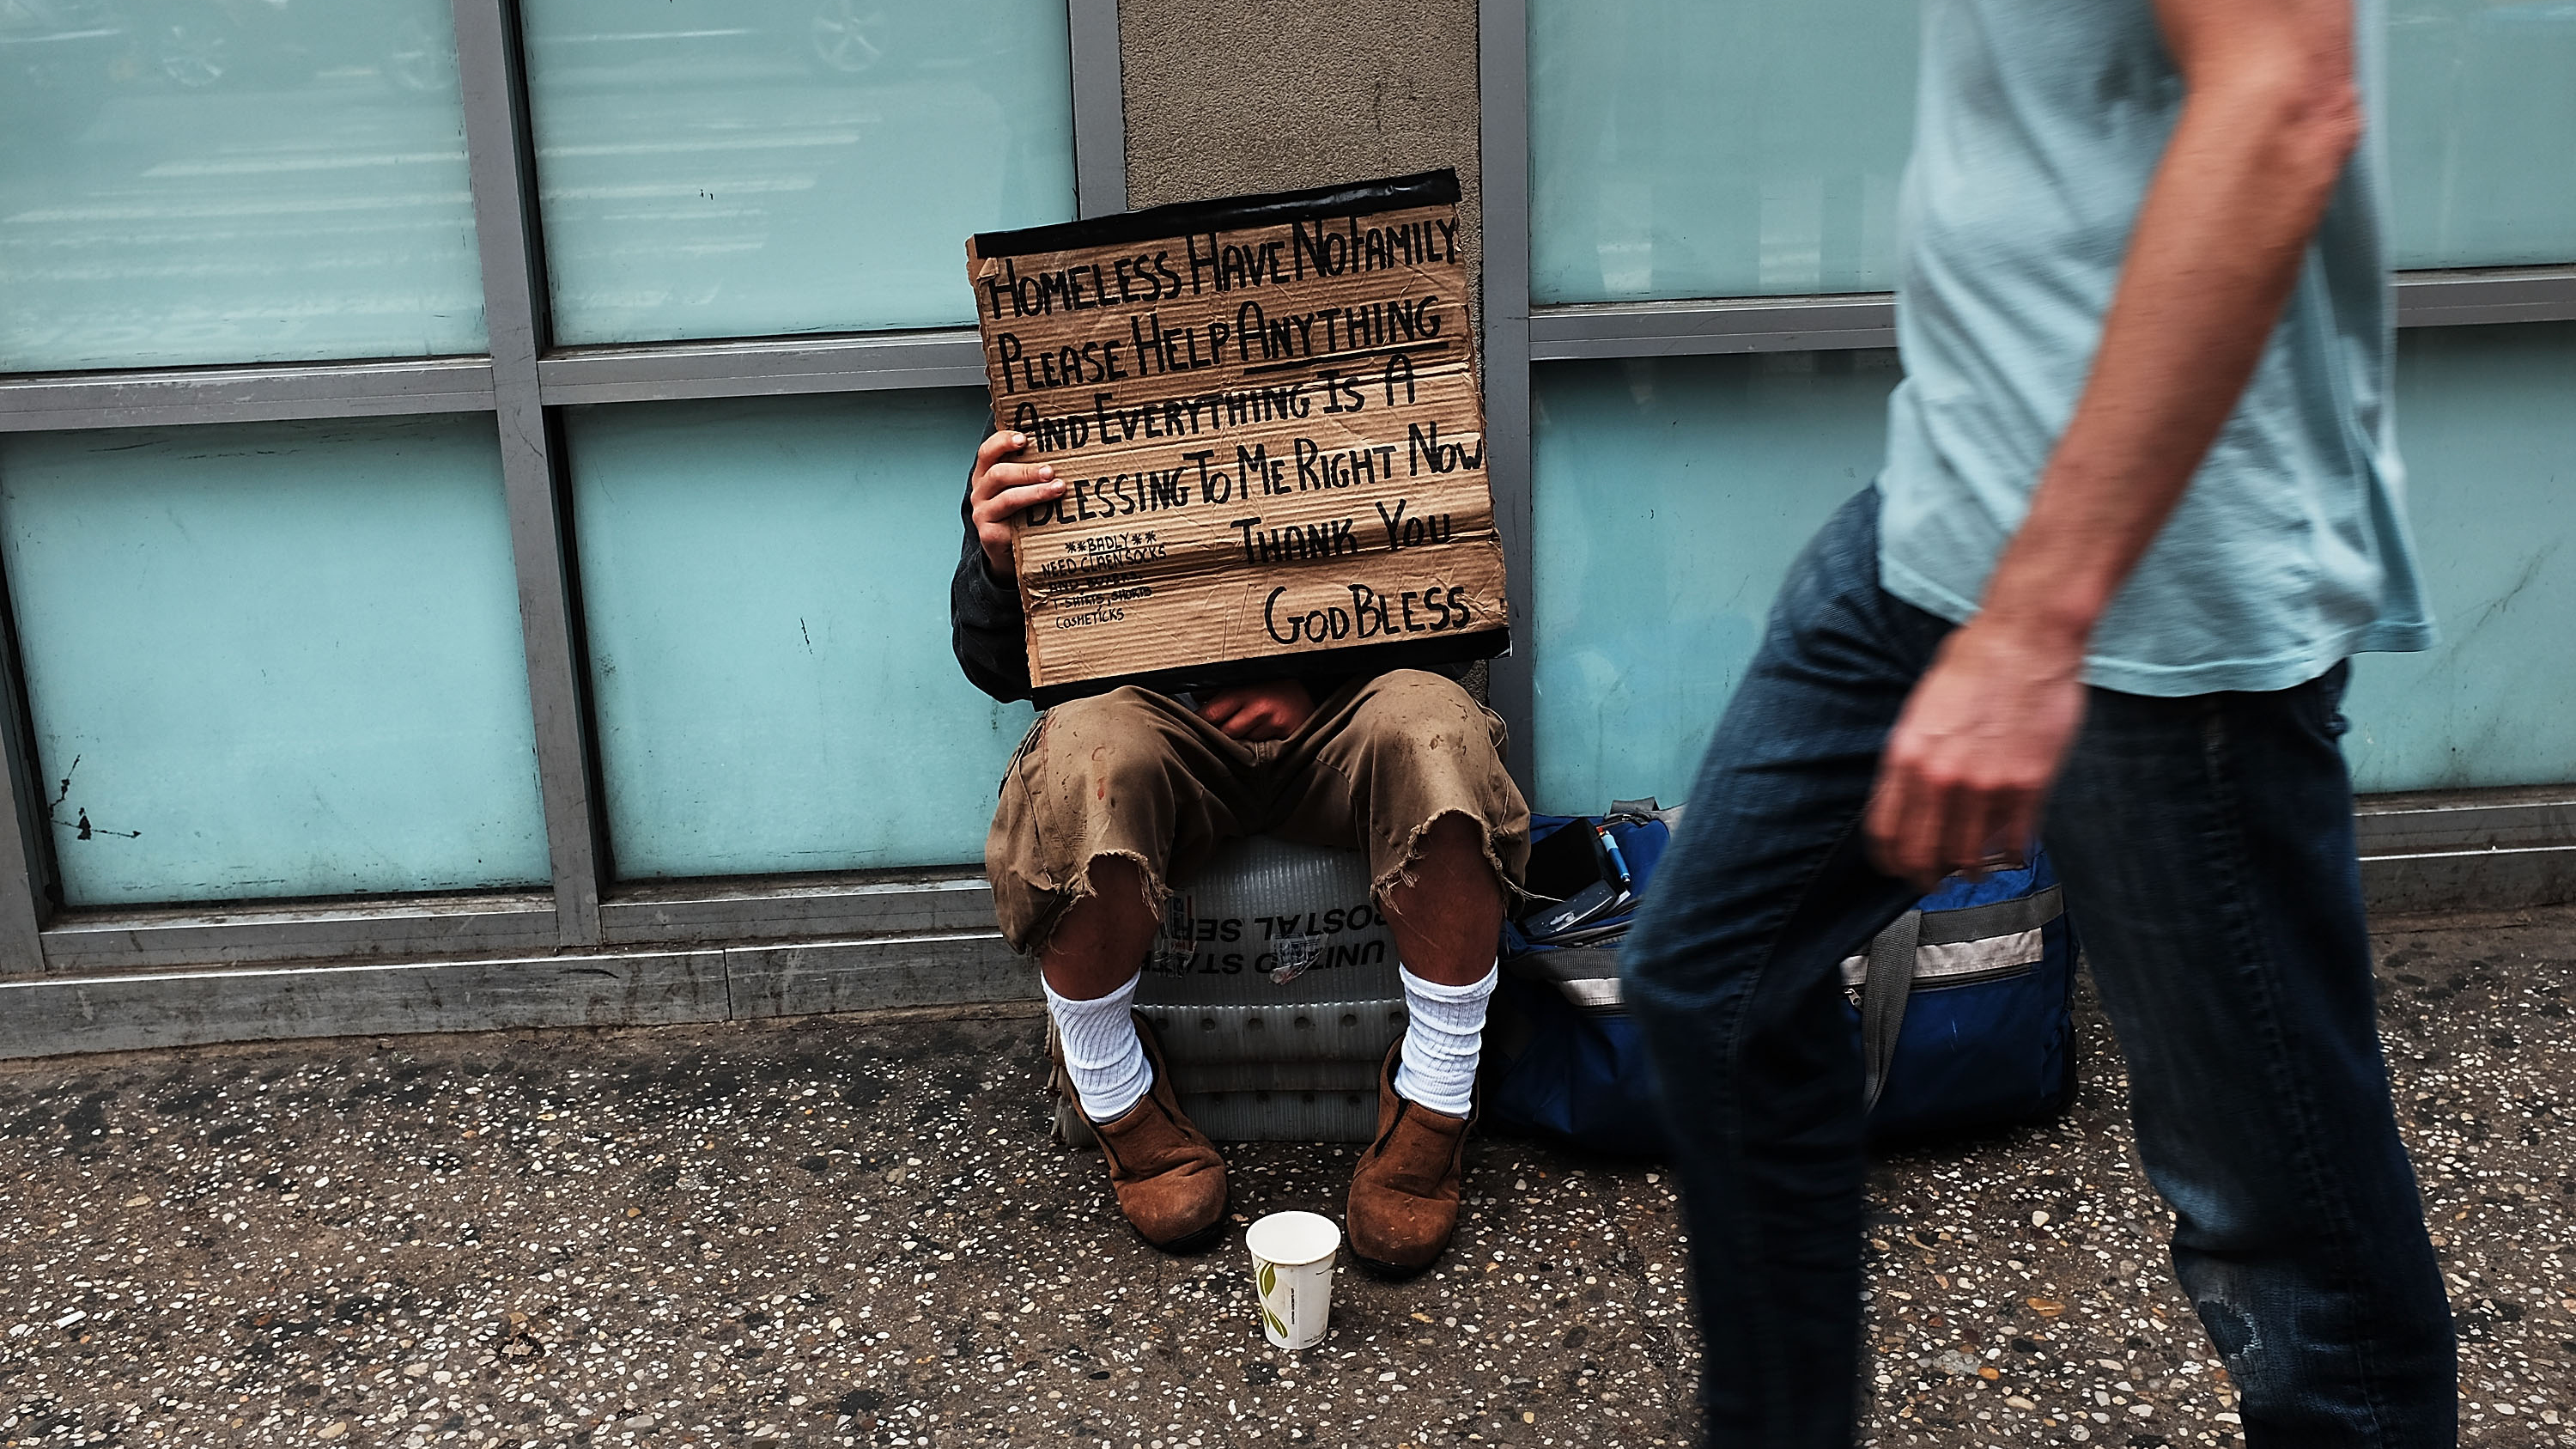 an introduction to the issue of homeless population in new york city Symposium on law and the homeless: an introduction most homeless people are not number of two- and three-family households in new york city public housing.